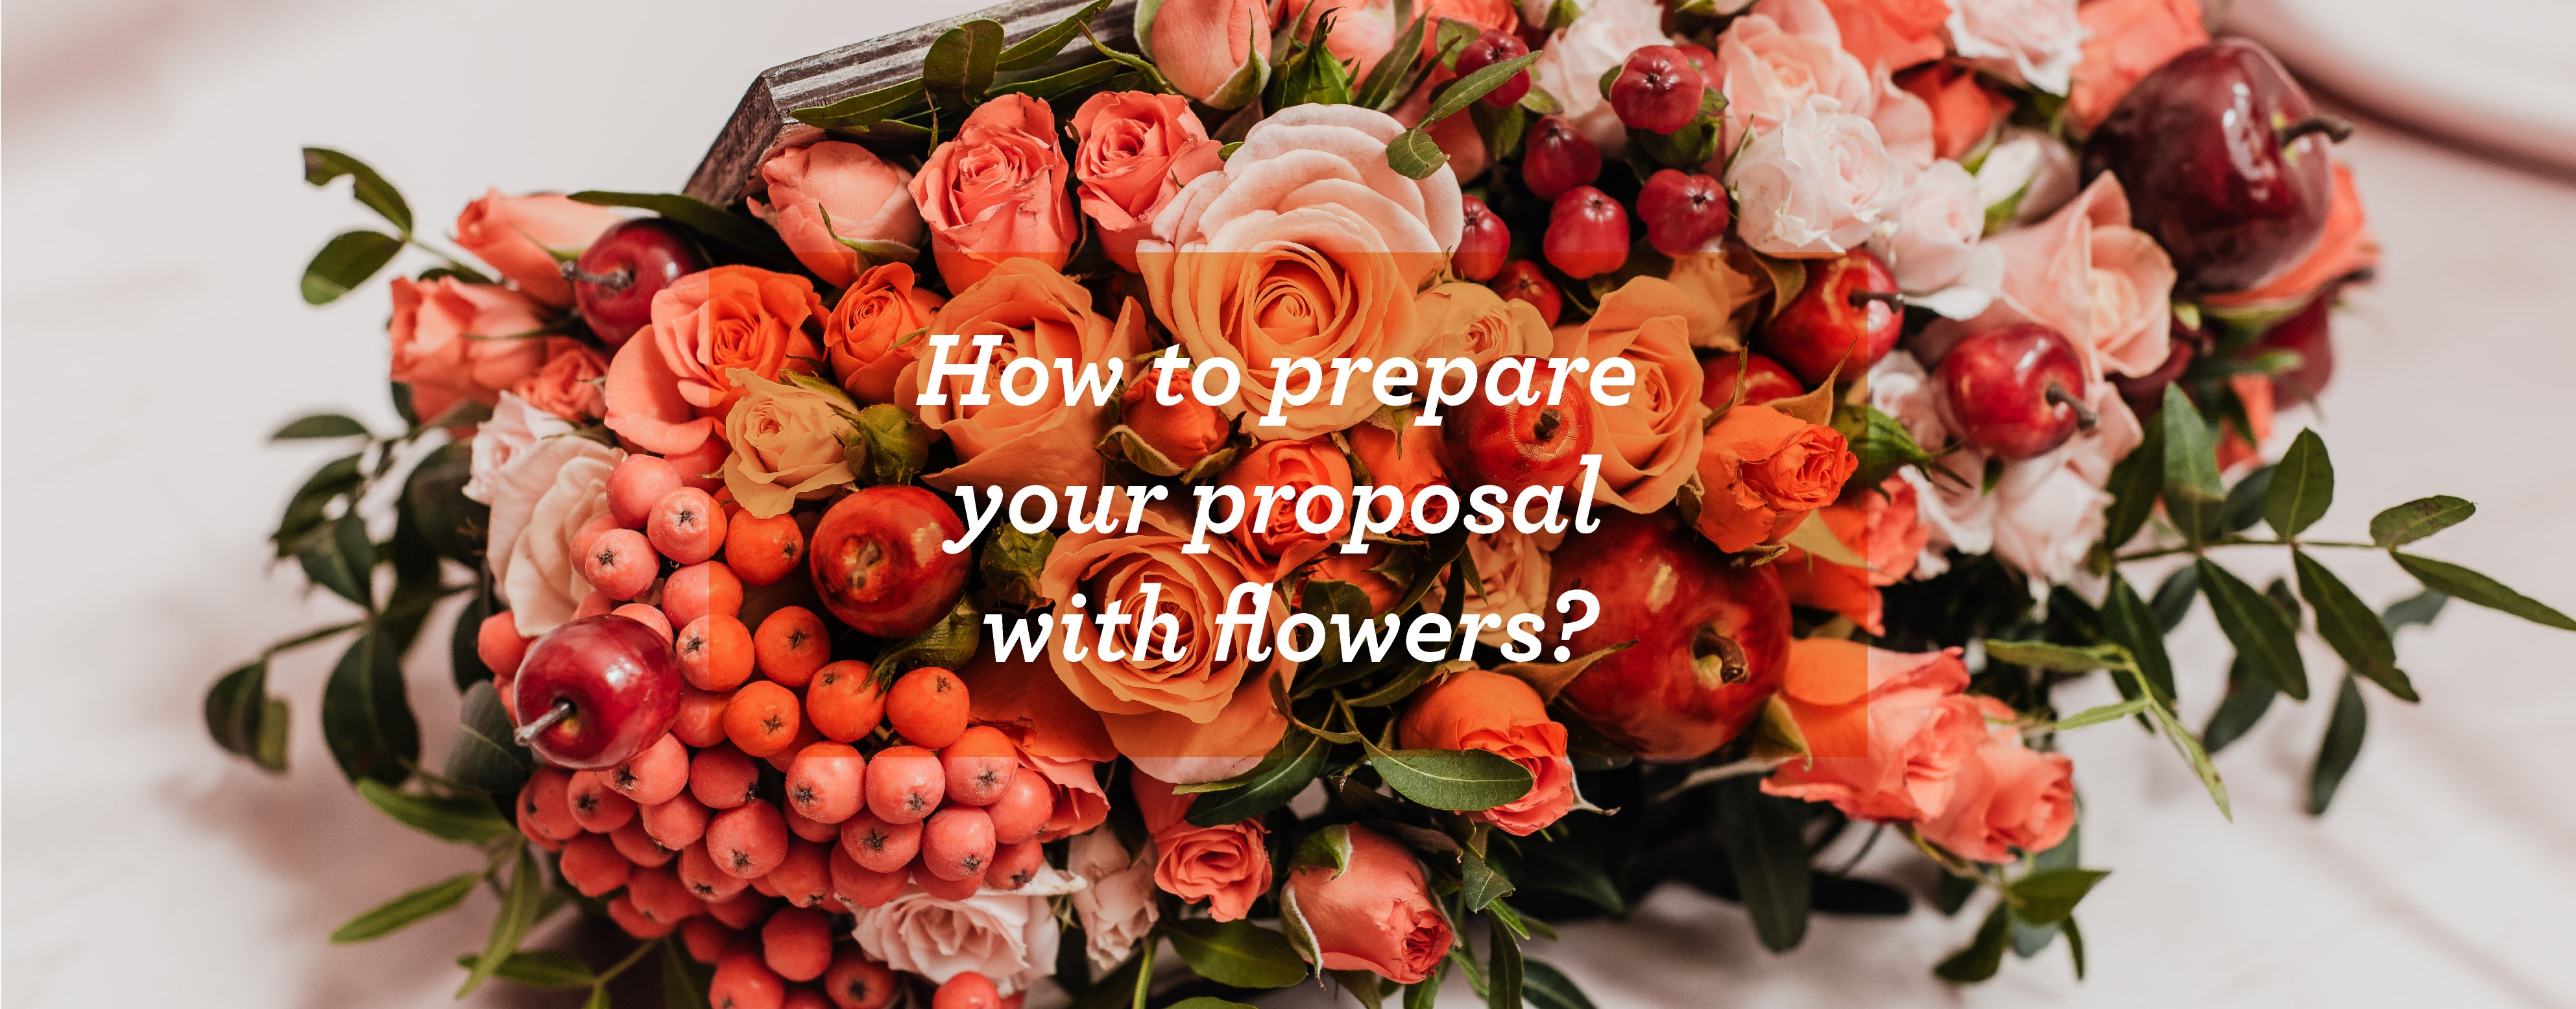 HHow to Prepare Your Proposal with Flowers